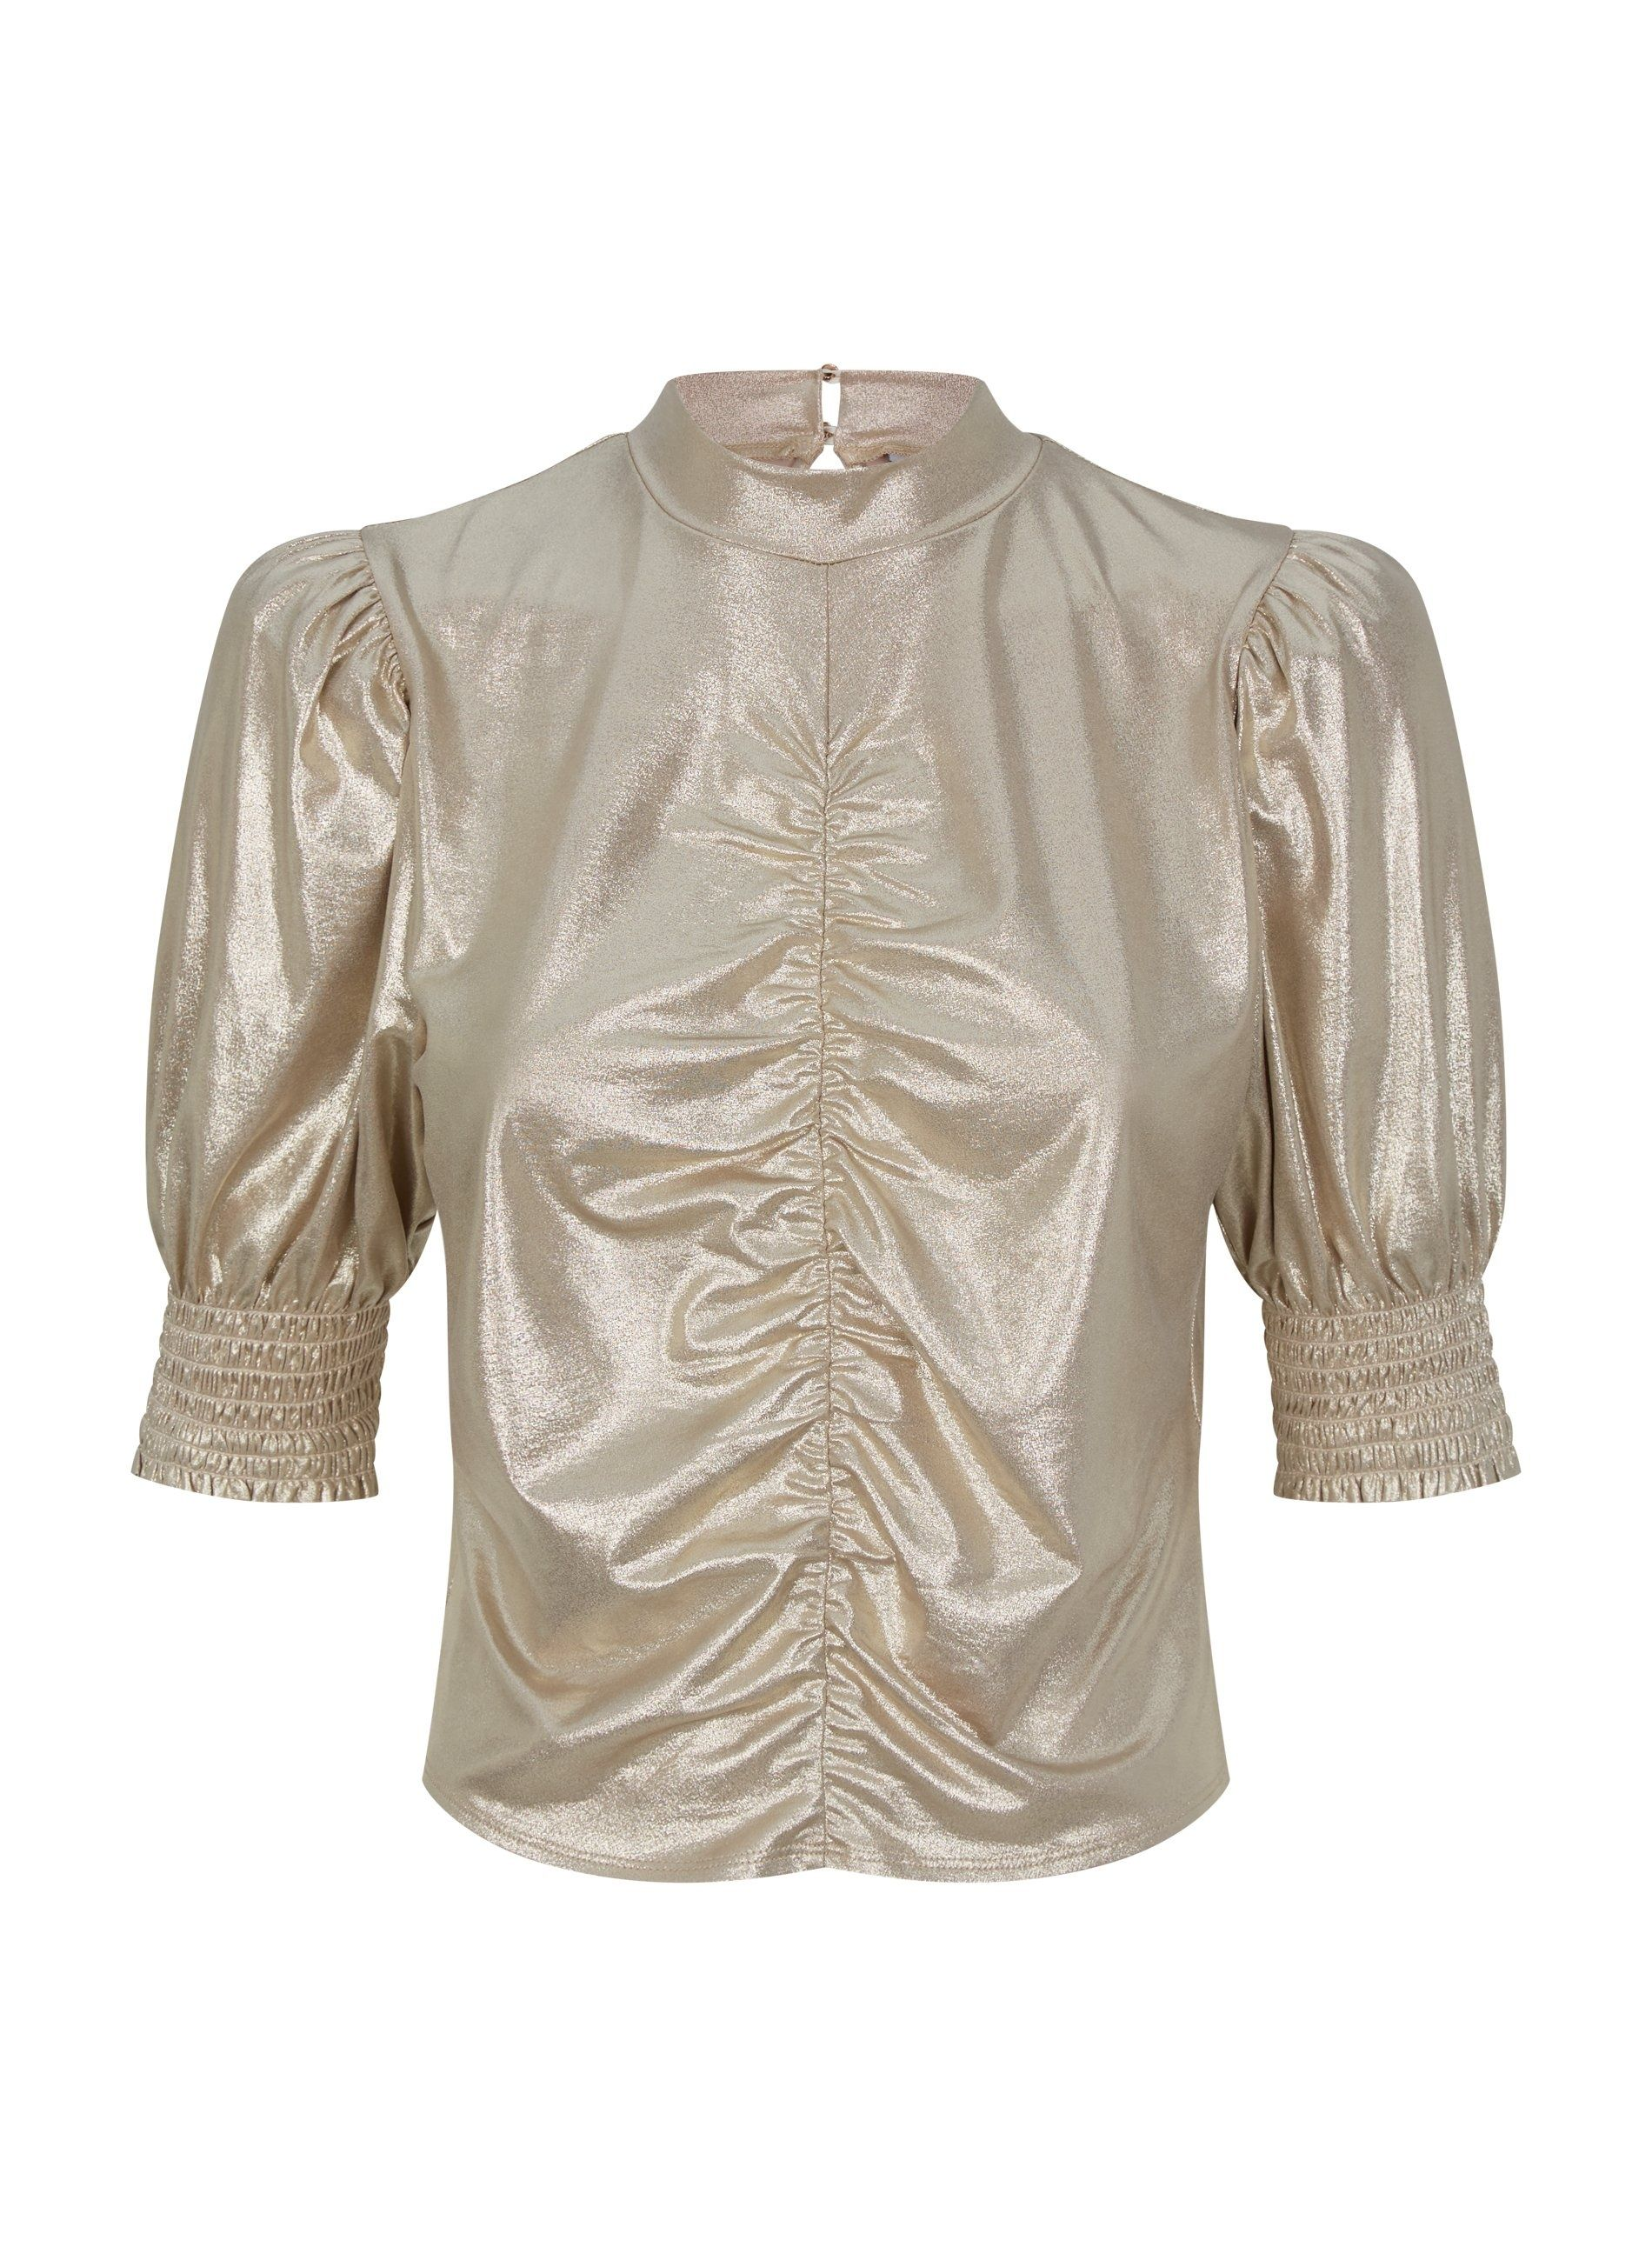 Dorothy Perkins Womens Gold Ruched Front Top Shirt Blouse 3/4 Sleeve Round Neck